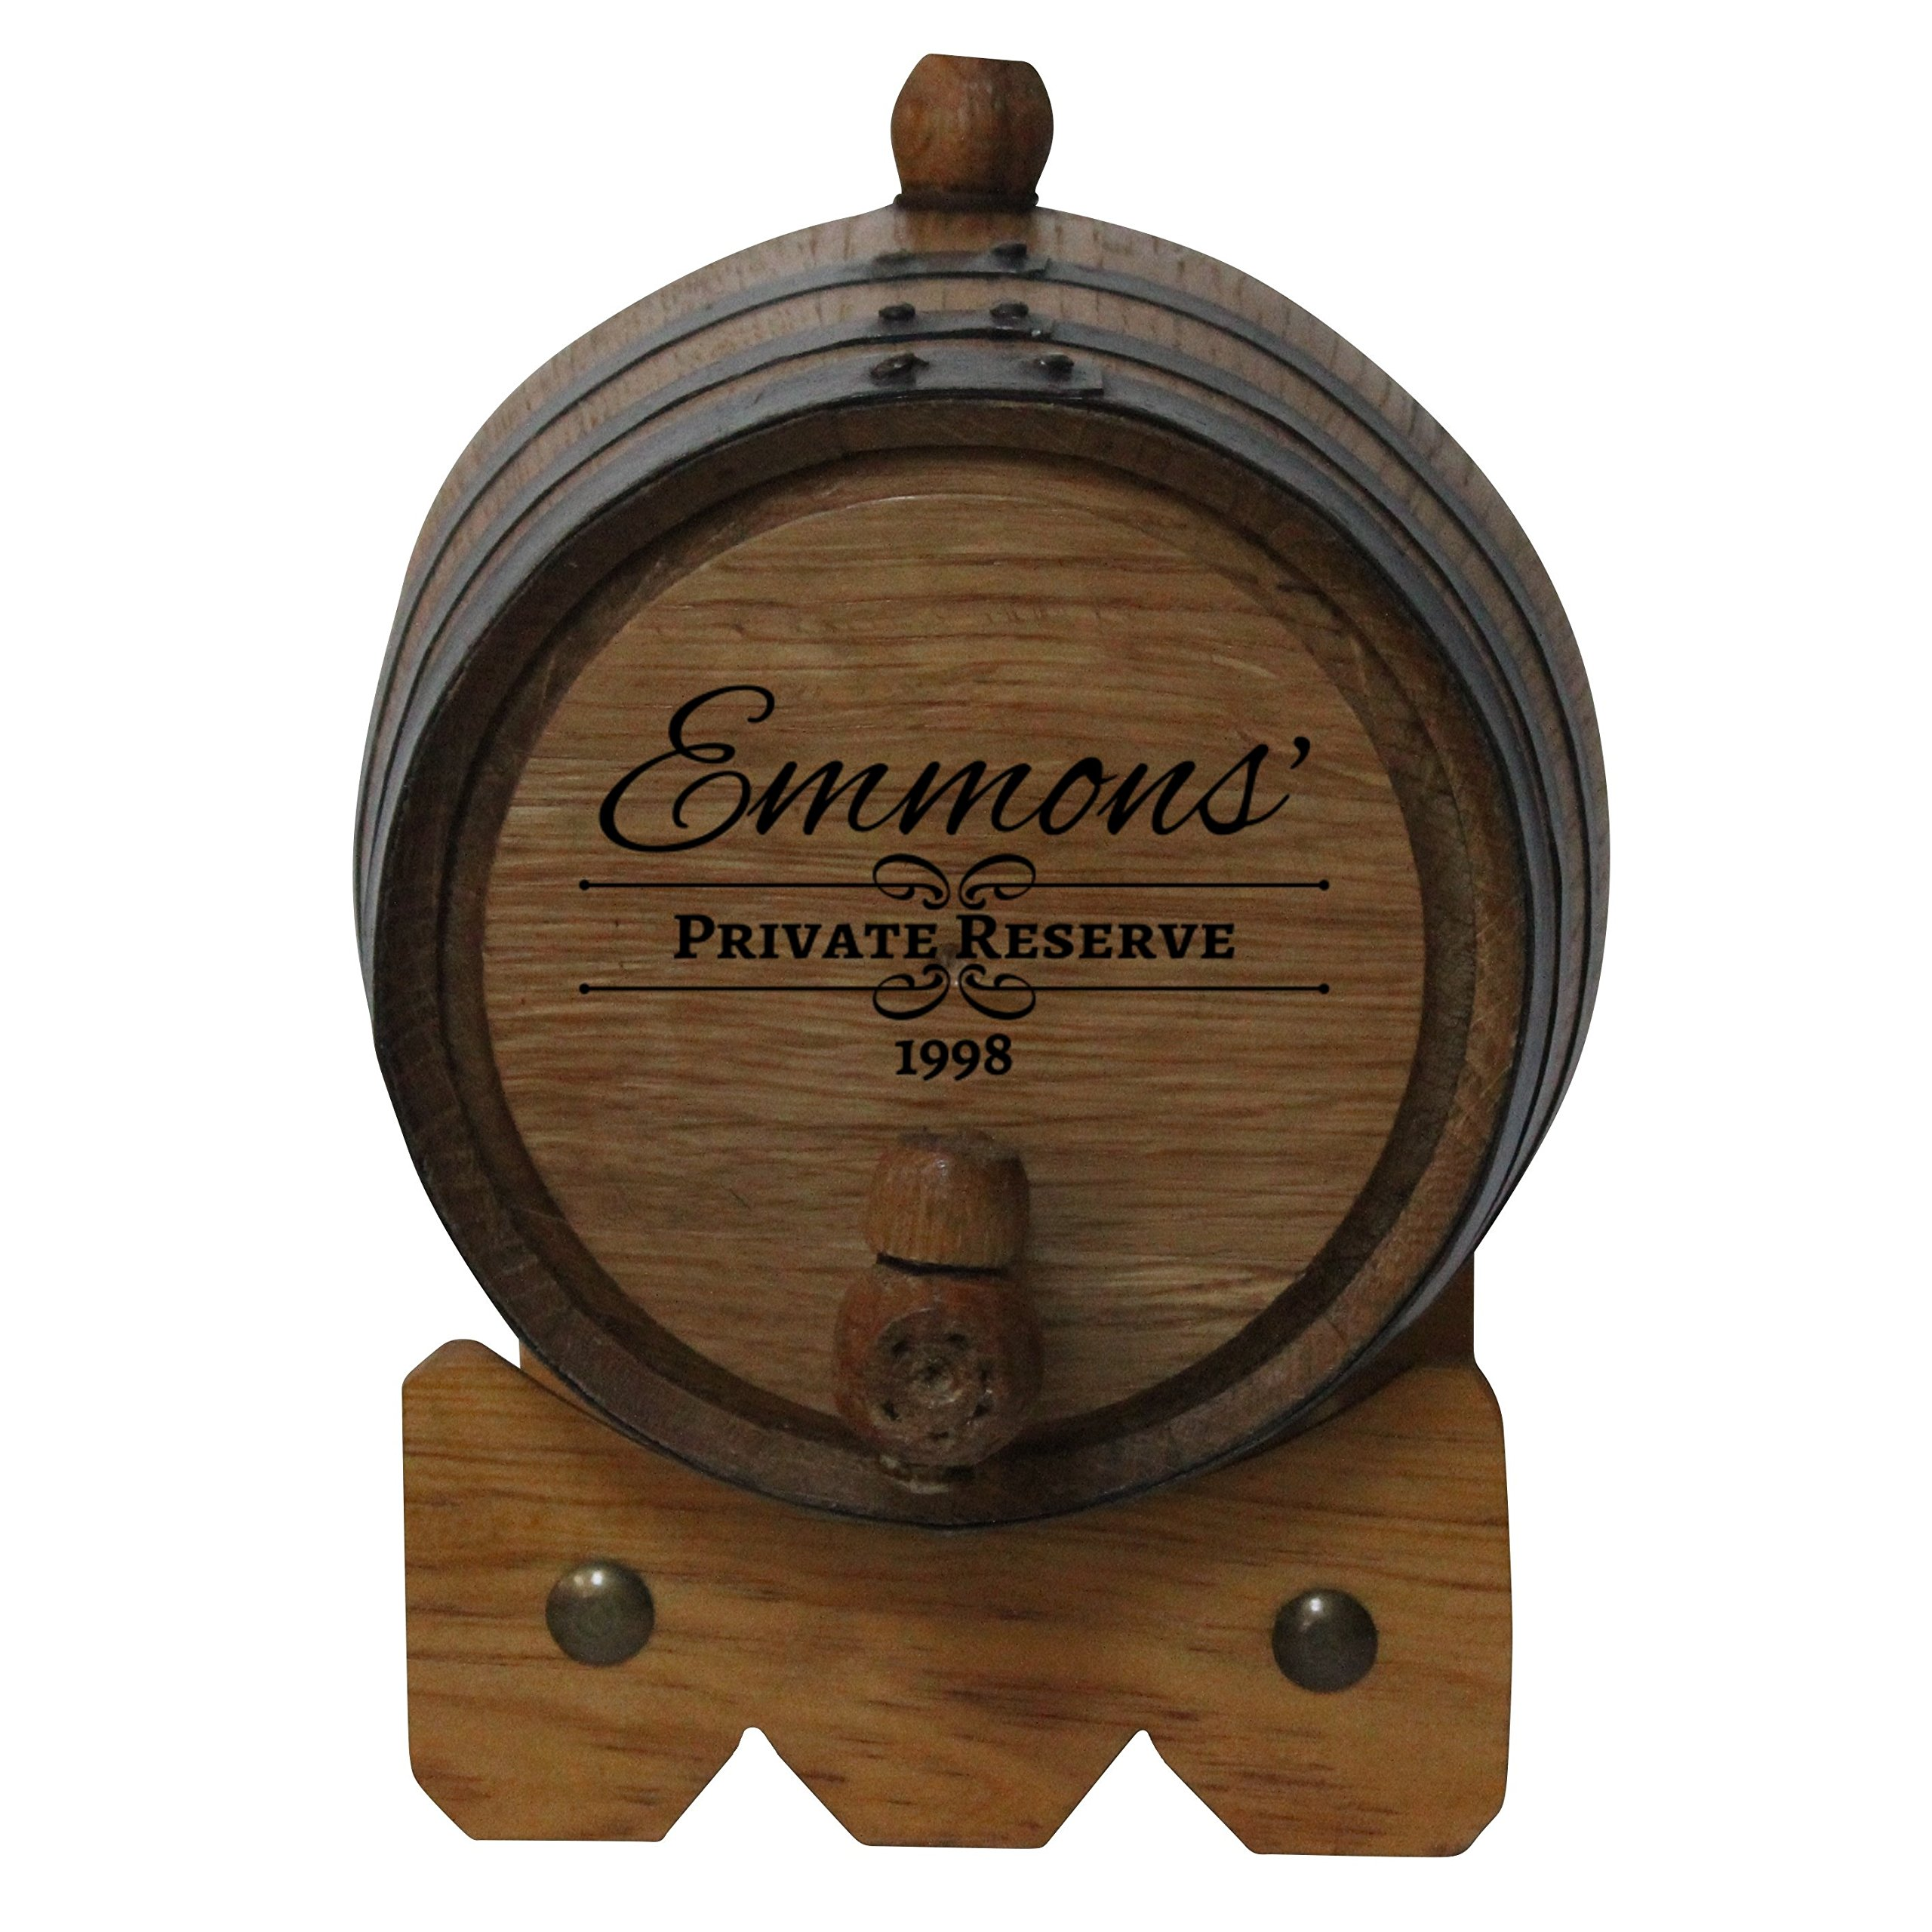 Deep South Barrels Personalized Oak Barrel | American White Oak | Custom Laser Engraved | Dispenser for Aging Whiskey, Rum, Tequila, Bourbon, Vinegar and Wine by Deep South Barrels (Image #1)